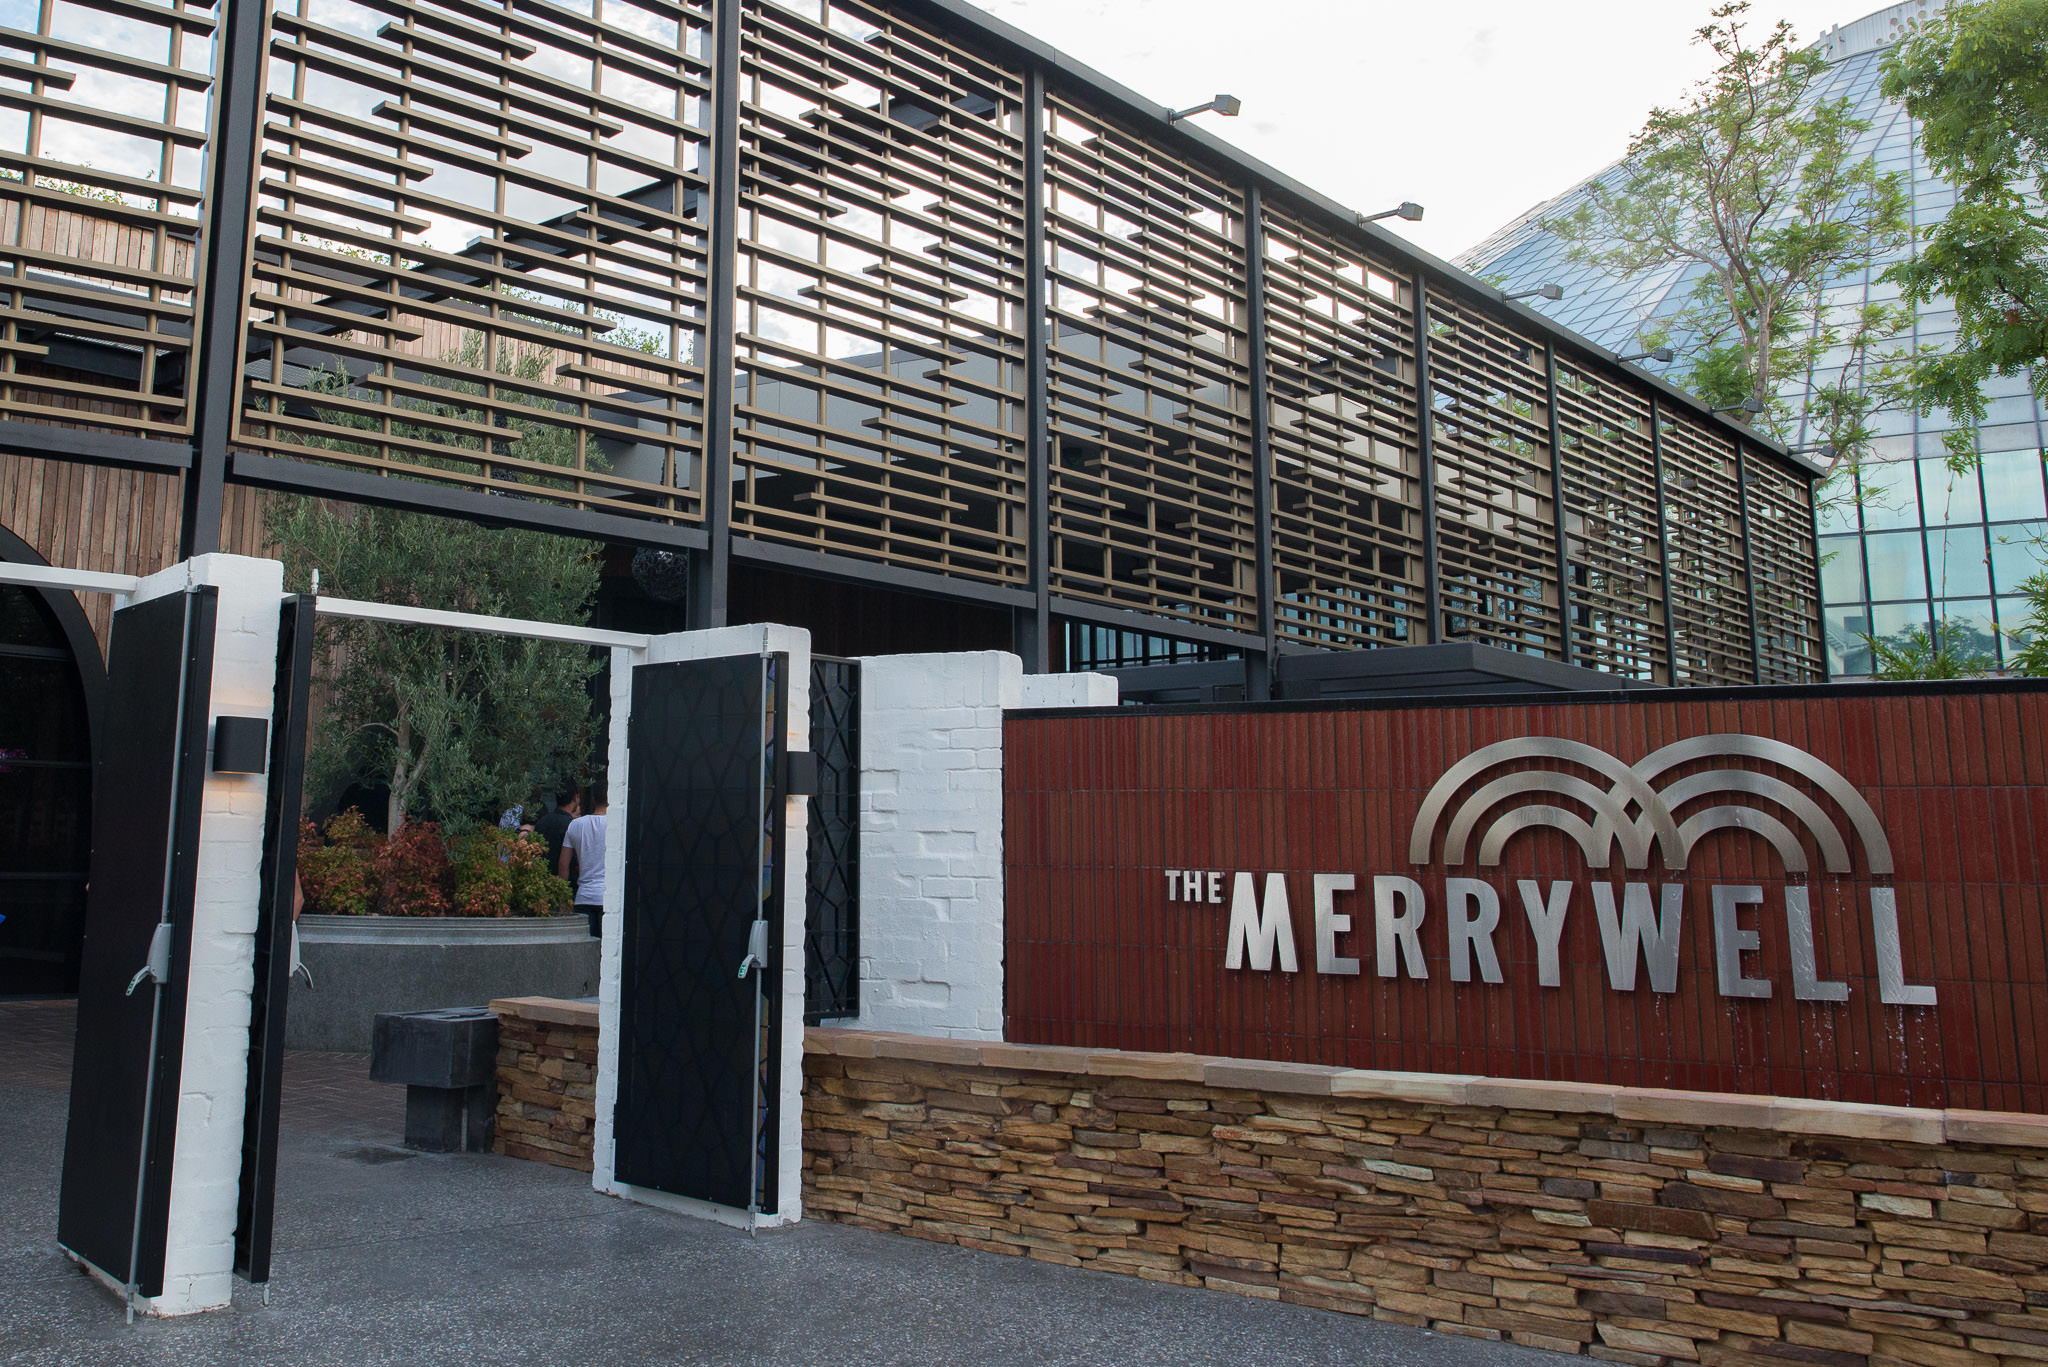 The Merrywell entrance